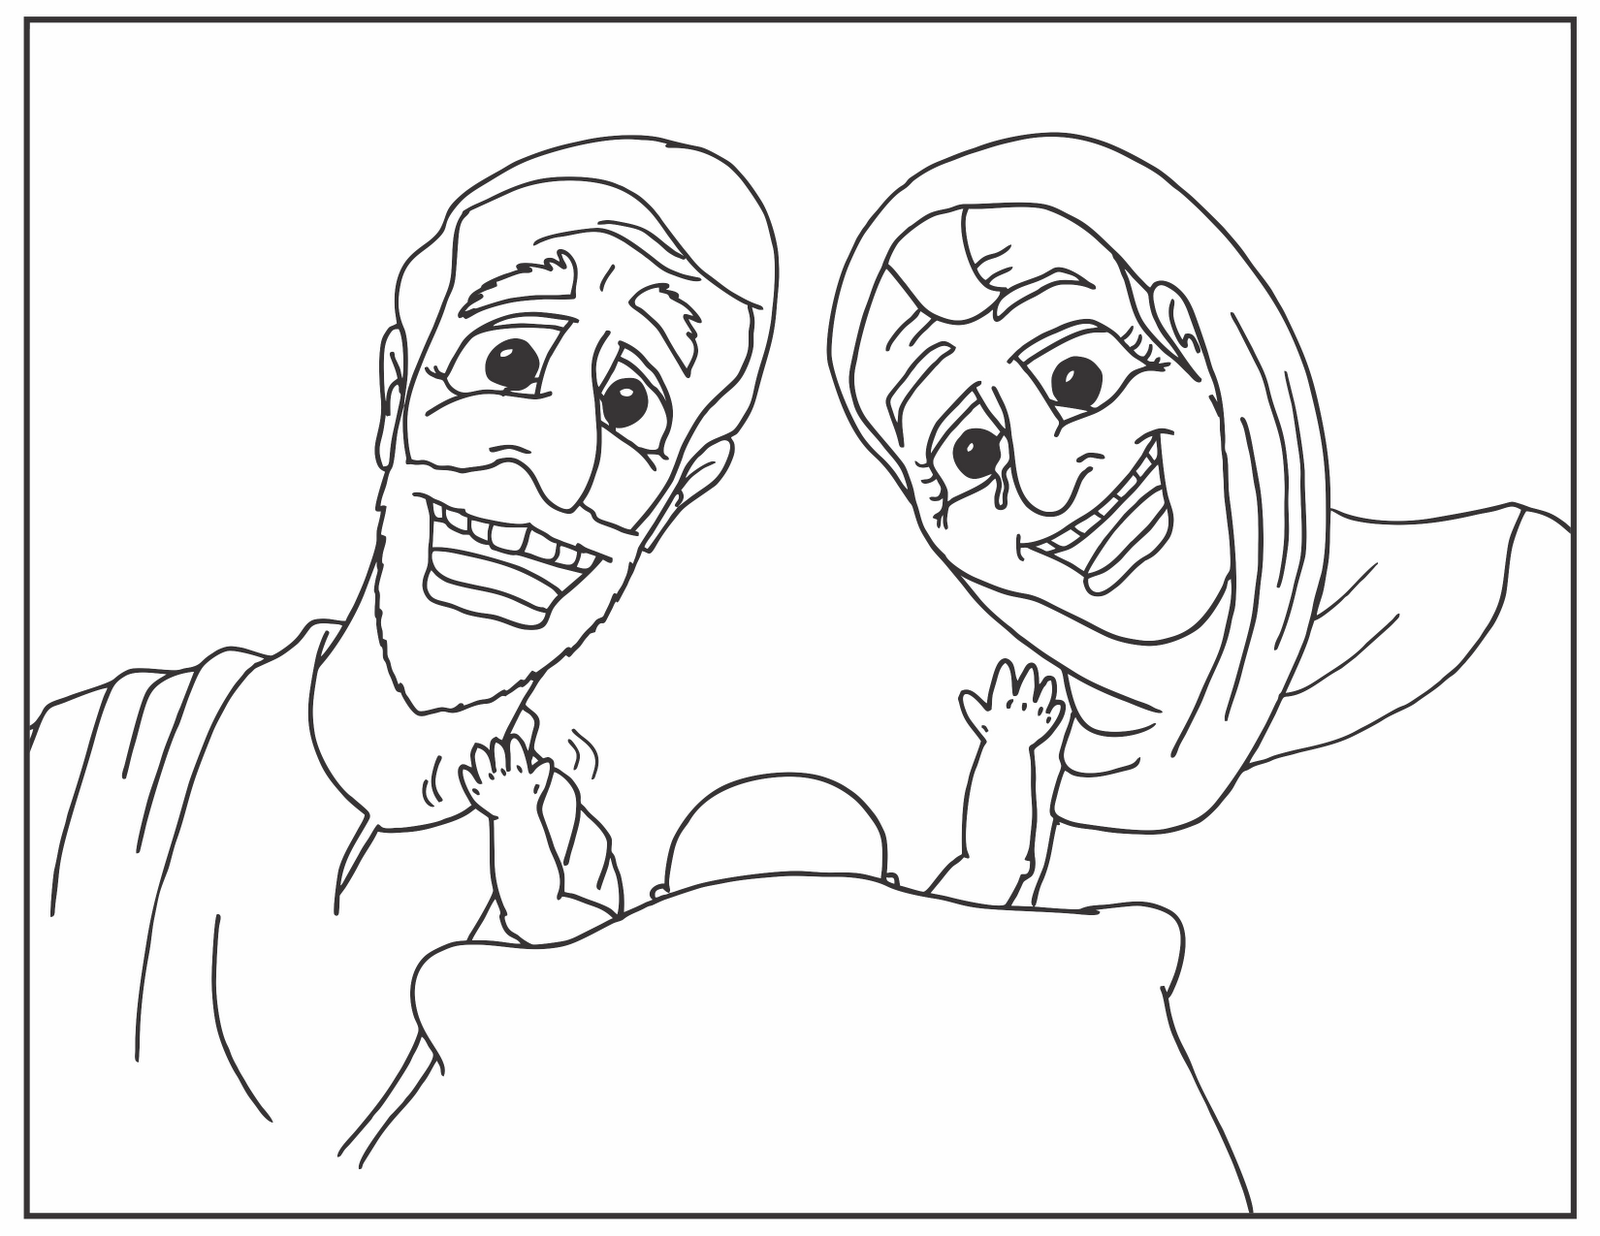 Matt's Sketch Pad: More Curriculum Coloring Pages